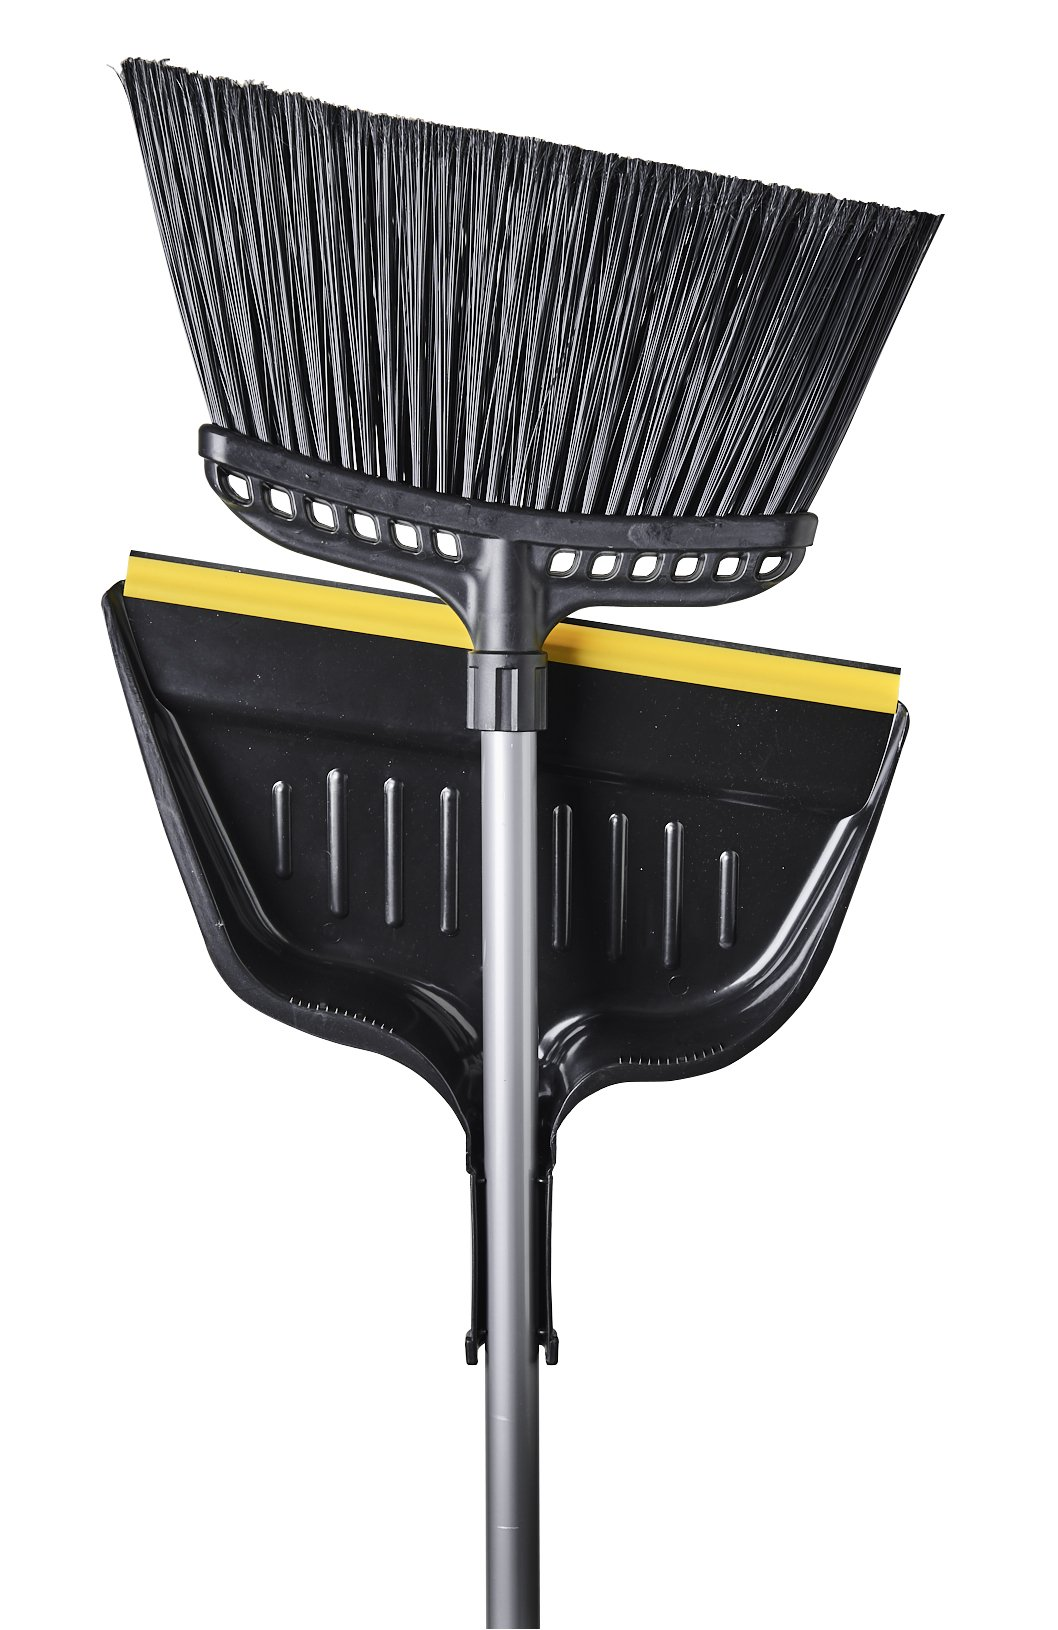 M2 Professional Hercules Heavy-Duty Industrial Angle Broom with Rubber Edge Dust Pan (Pack of 4) by M2 Professional Cleaning Products Ltd.